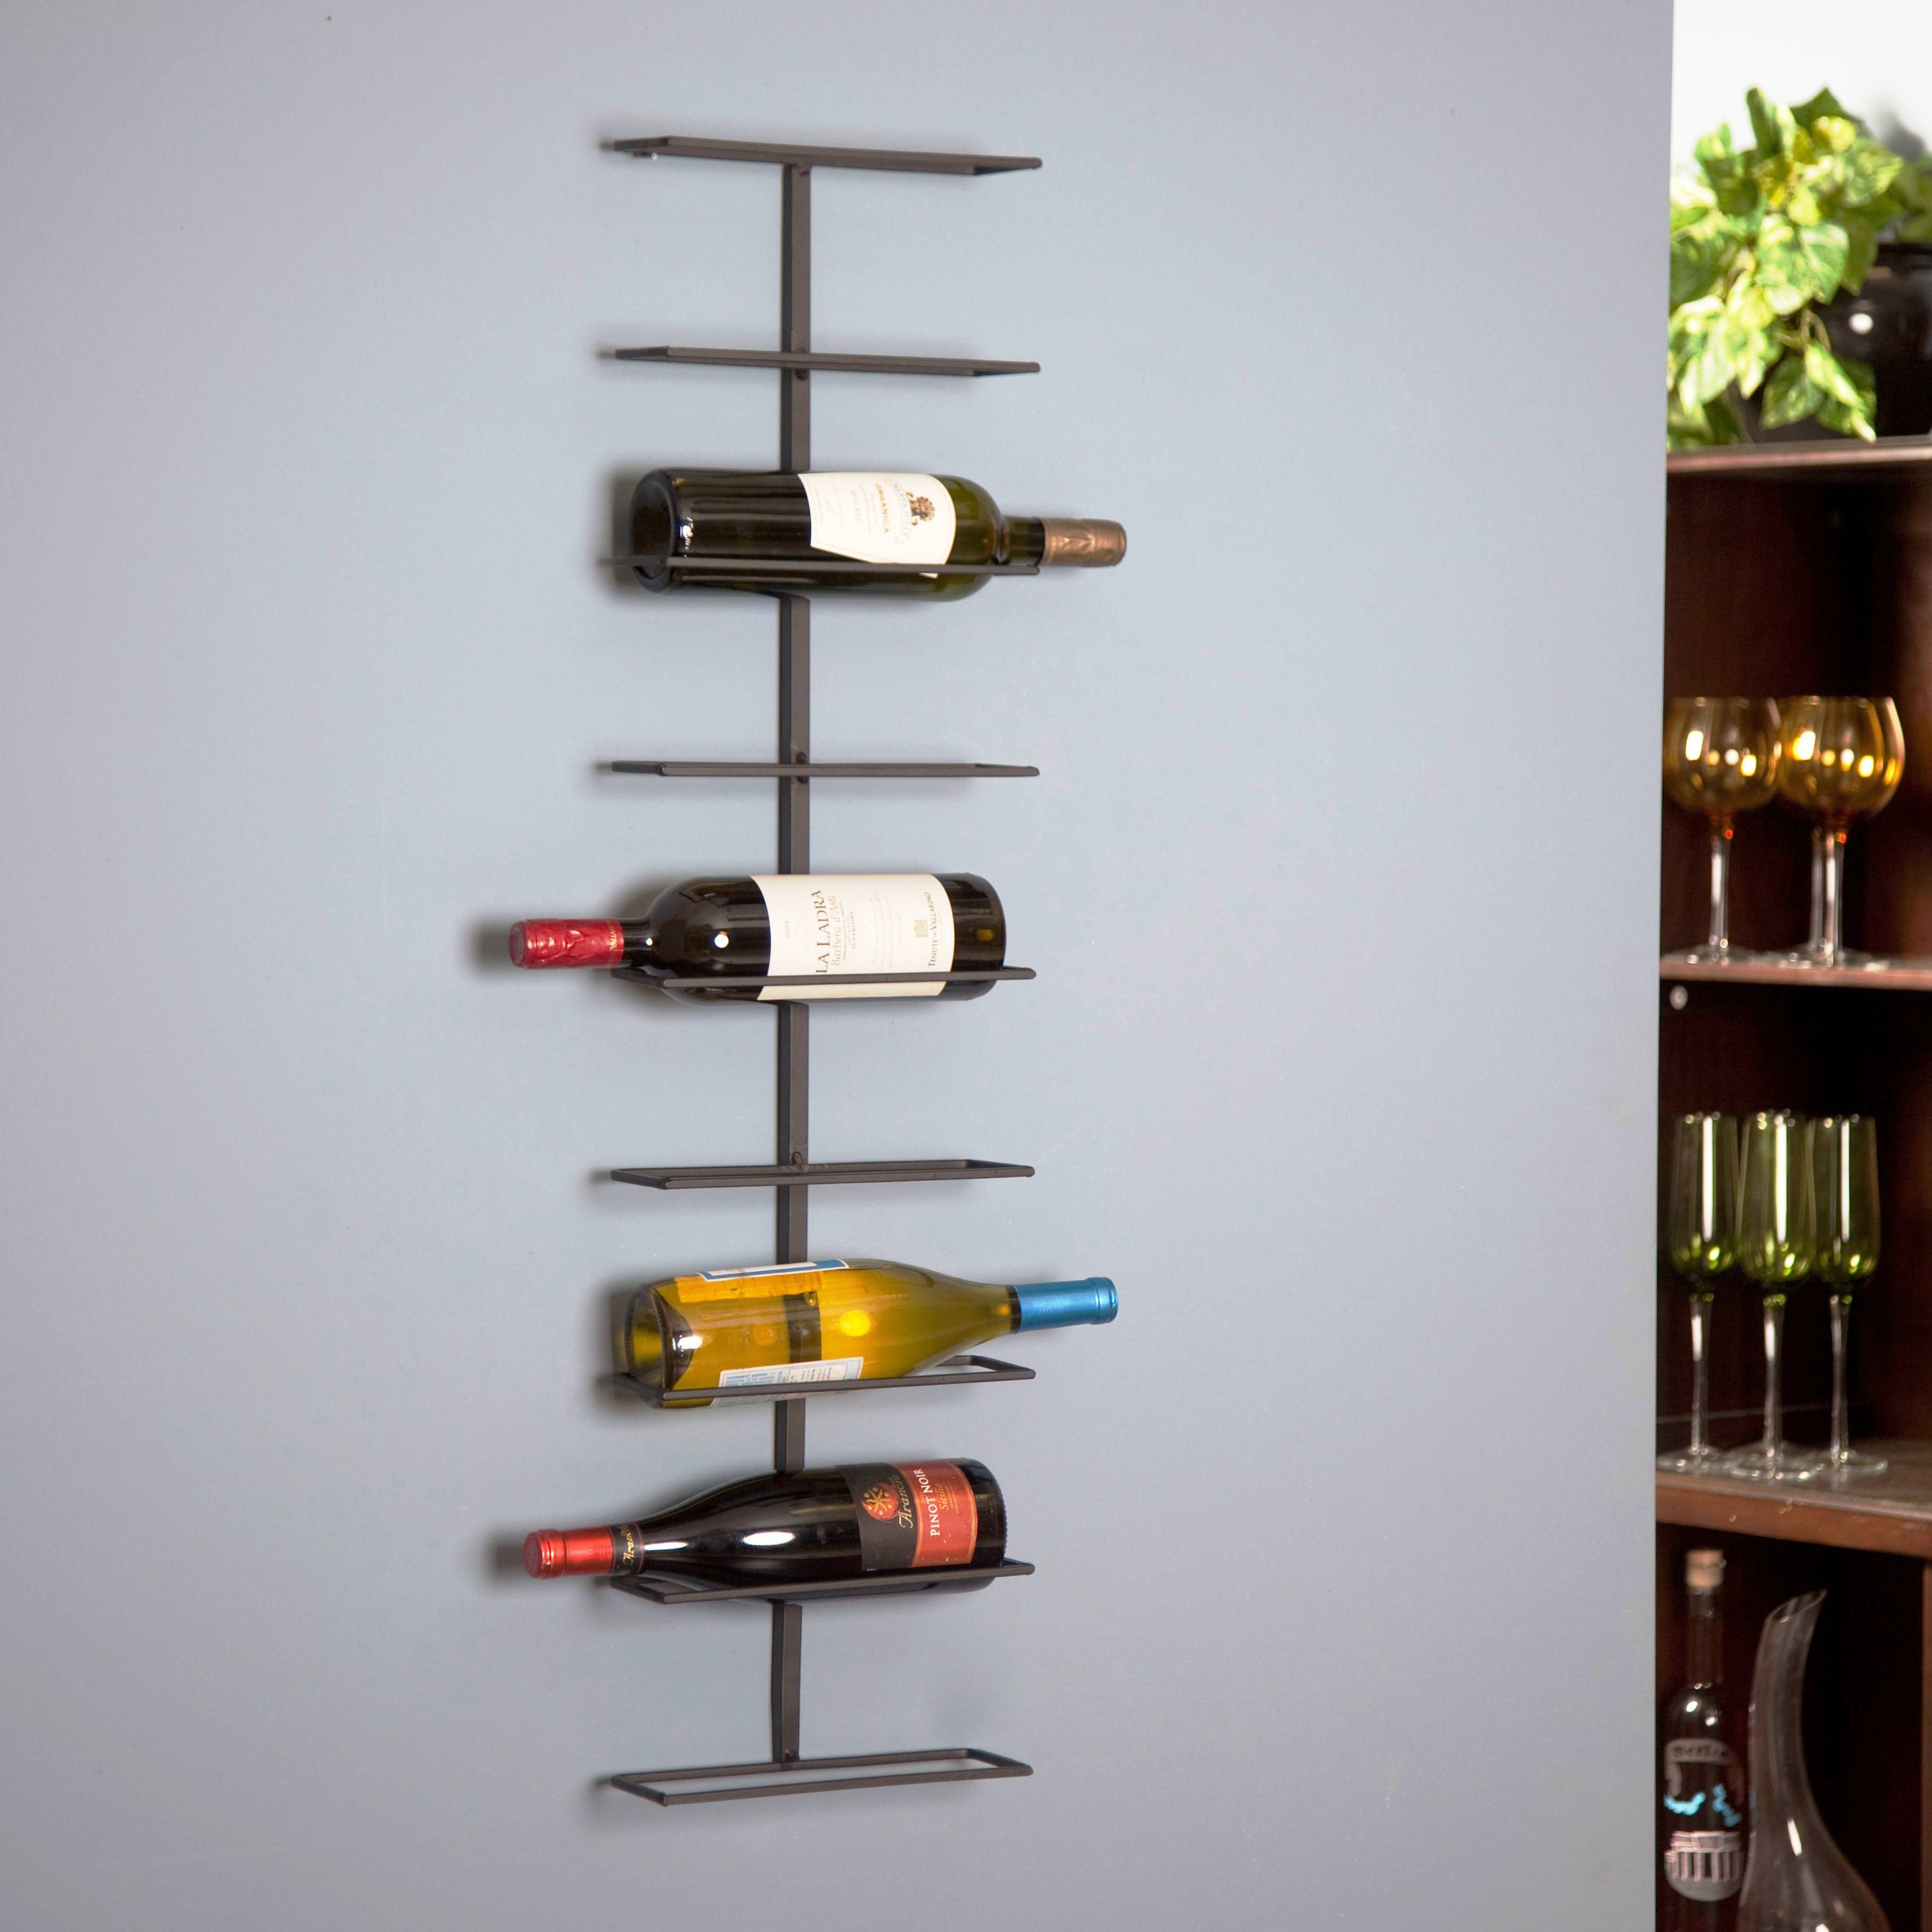 metal-wine-racks-investment-for-your-home-design-inspirations-image ...